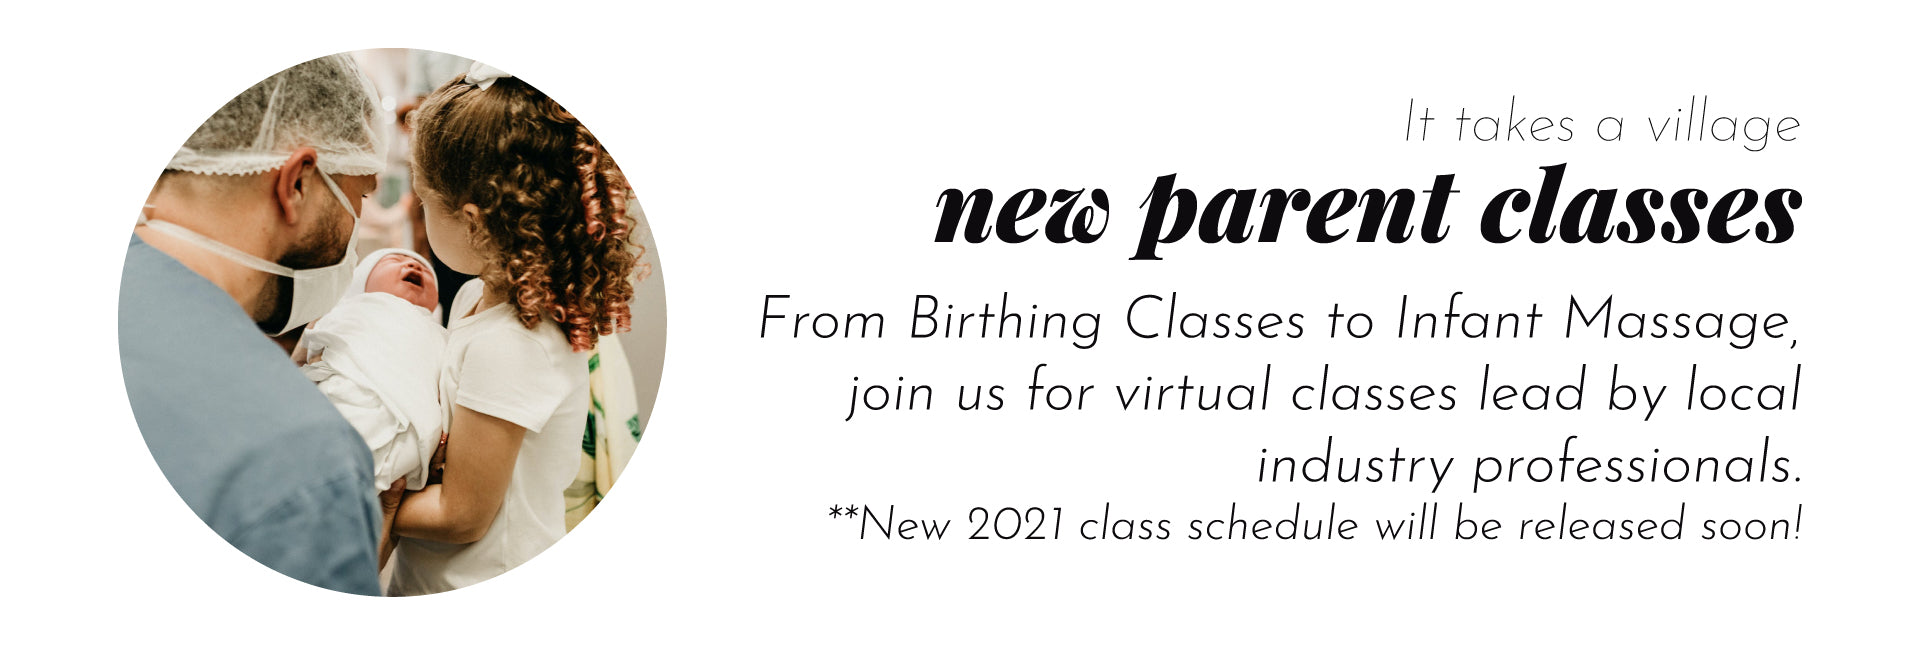 New Parent Classes